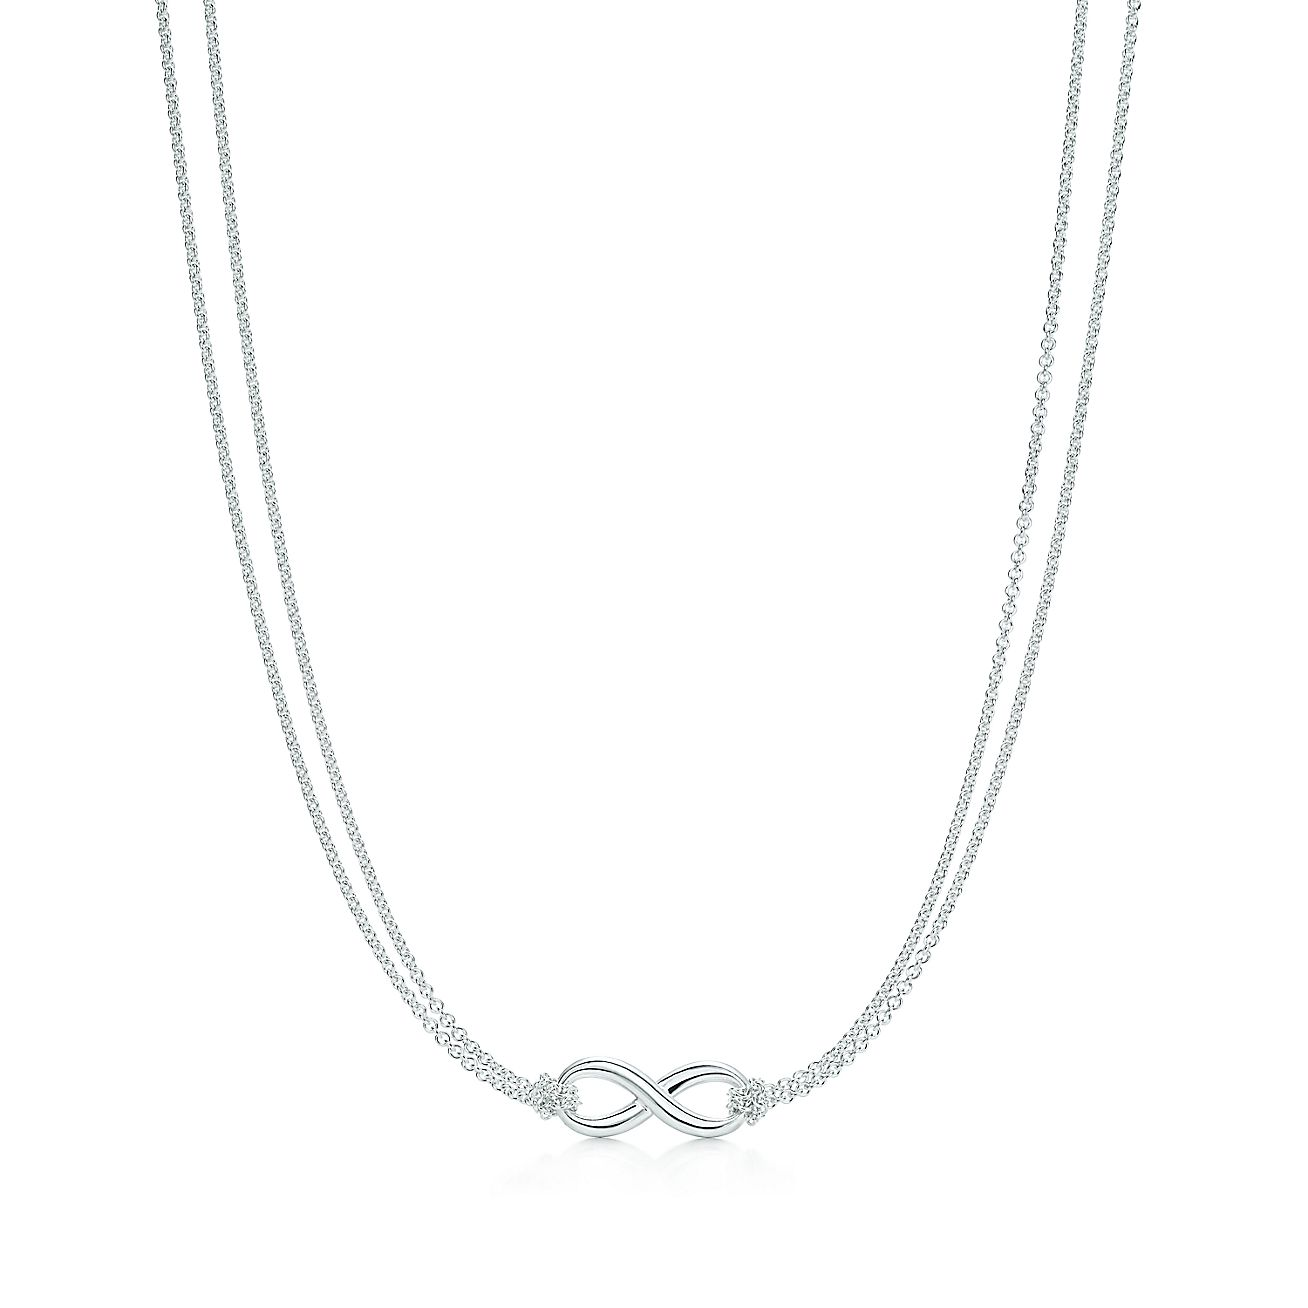 boutique gold necklaces infinity times sign necklace happiness en rose